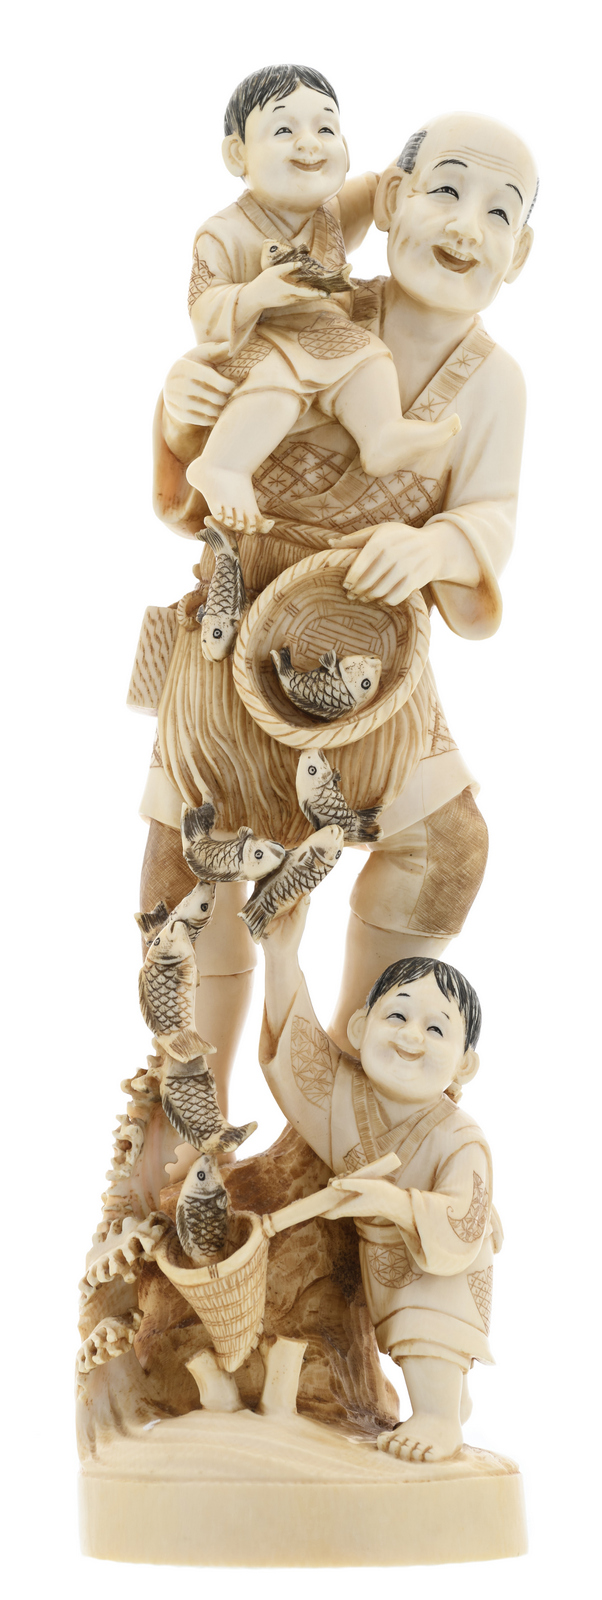 A Japanese ivory okimono depicting a fishmonger and his children from daily life in the Meiji period, partially tinted, marked, H 34 cm - Weight: 1640g